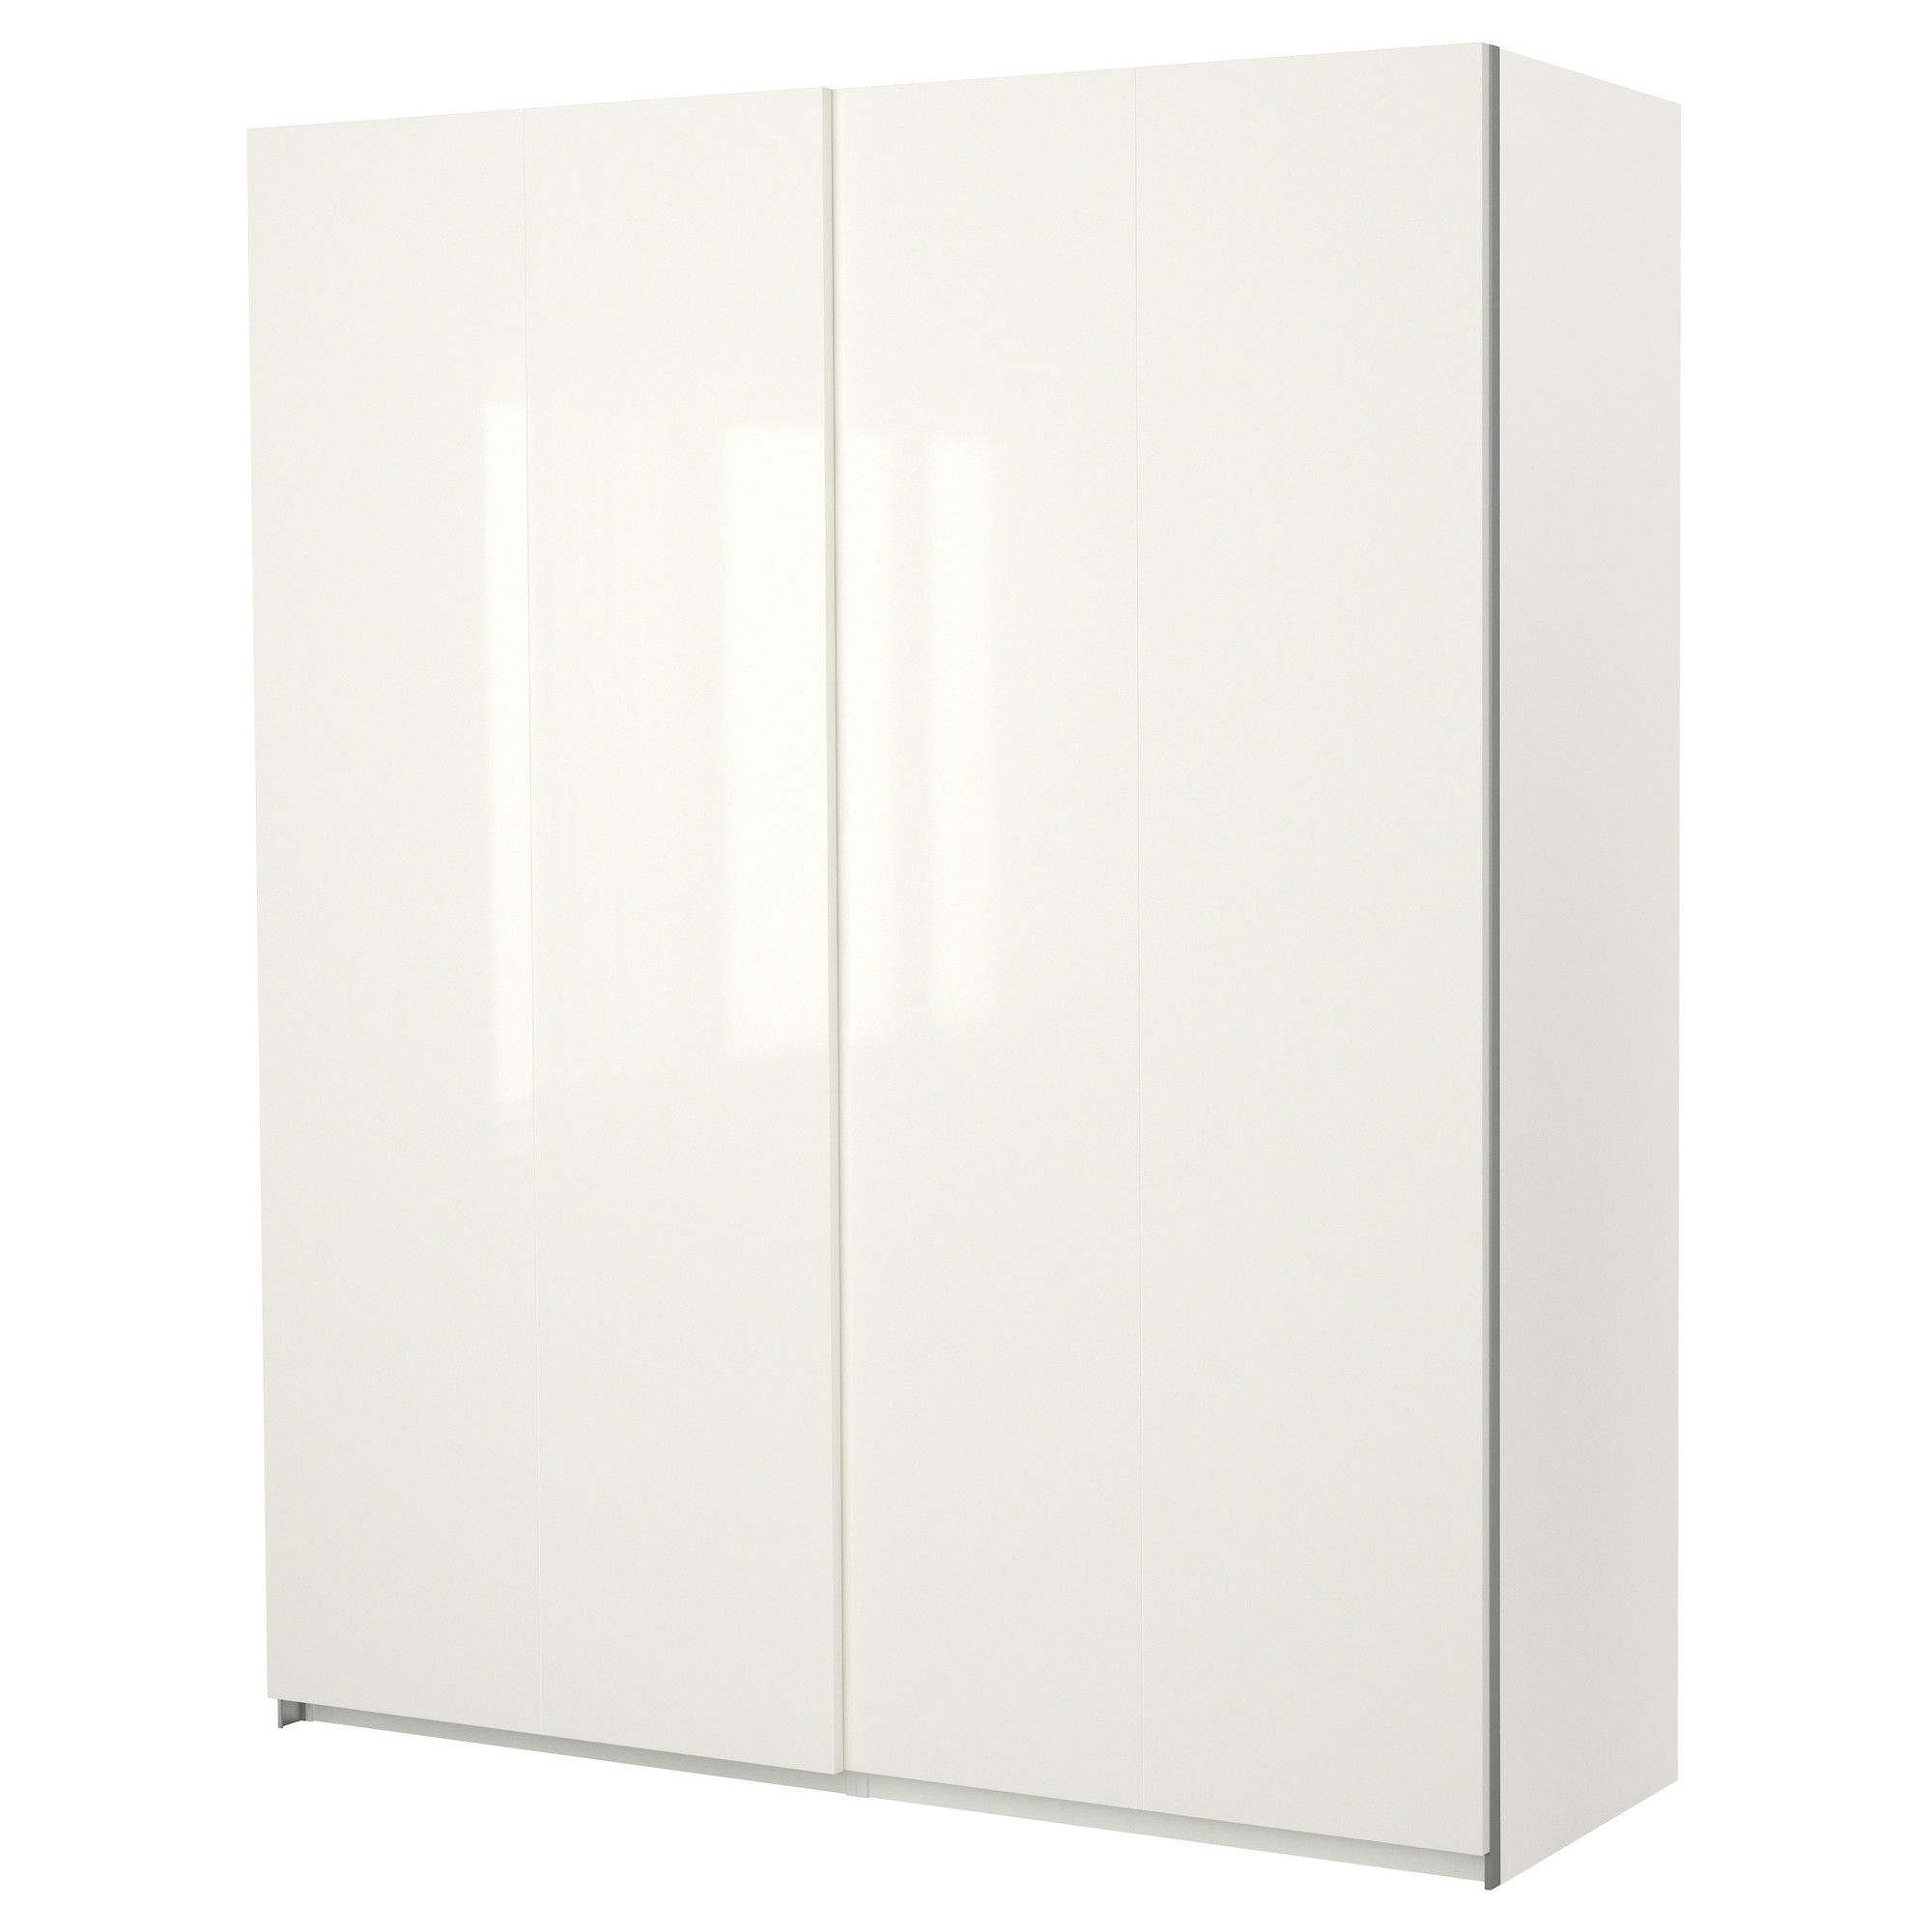 pax wardrobe with sliding doors hasvik high gloss white 200x66x236 cm ikea bedroom ideas. Black Bedroom Furniture Sets. Home Design Ideas